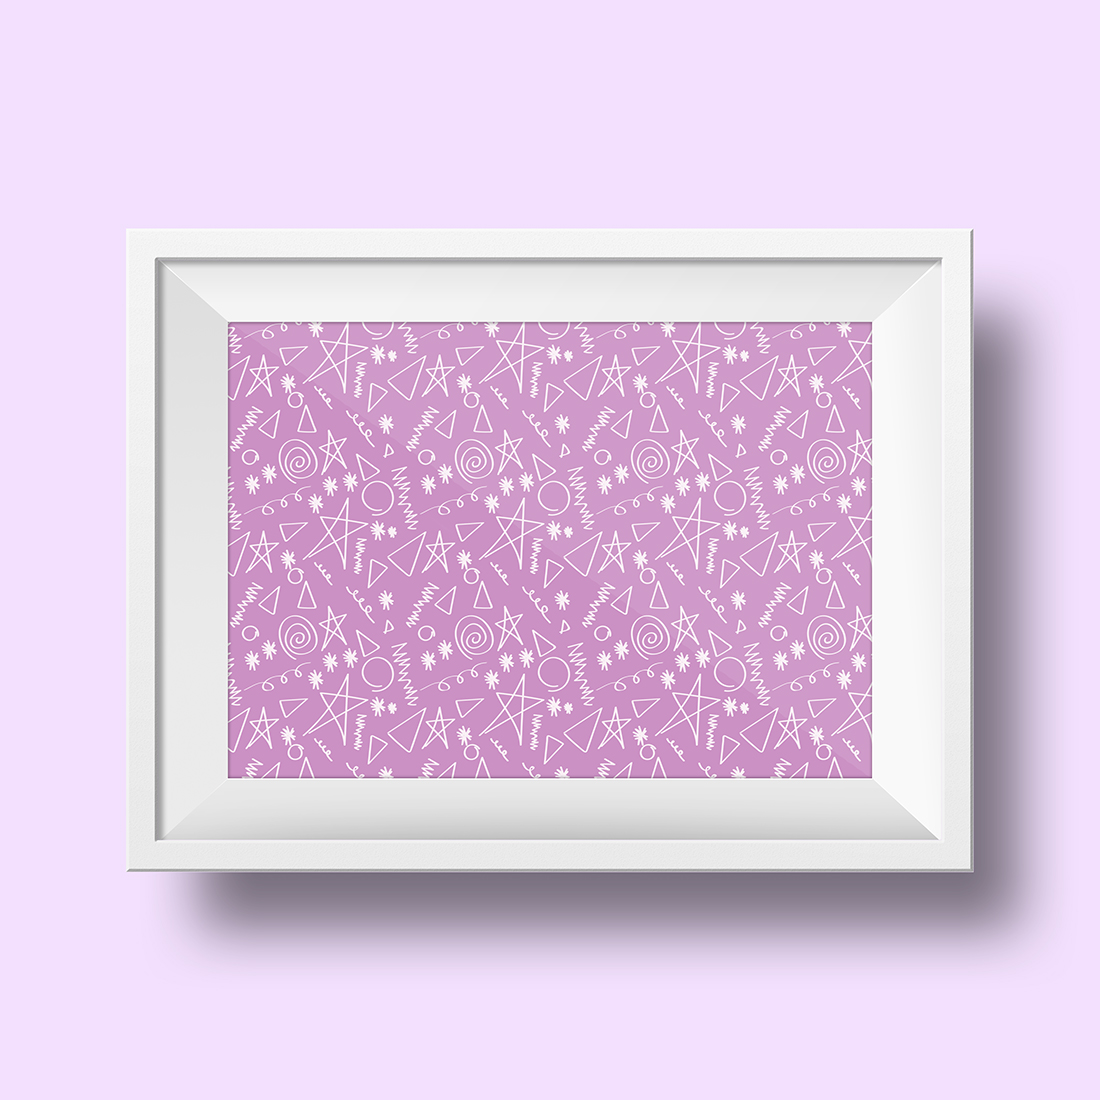 1980s Doodle Pattern Art Printables / Freebie Fridays • Little Gold Pixel